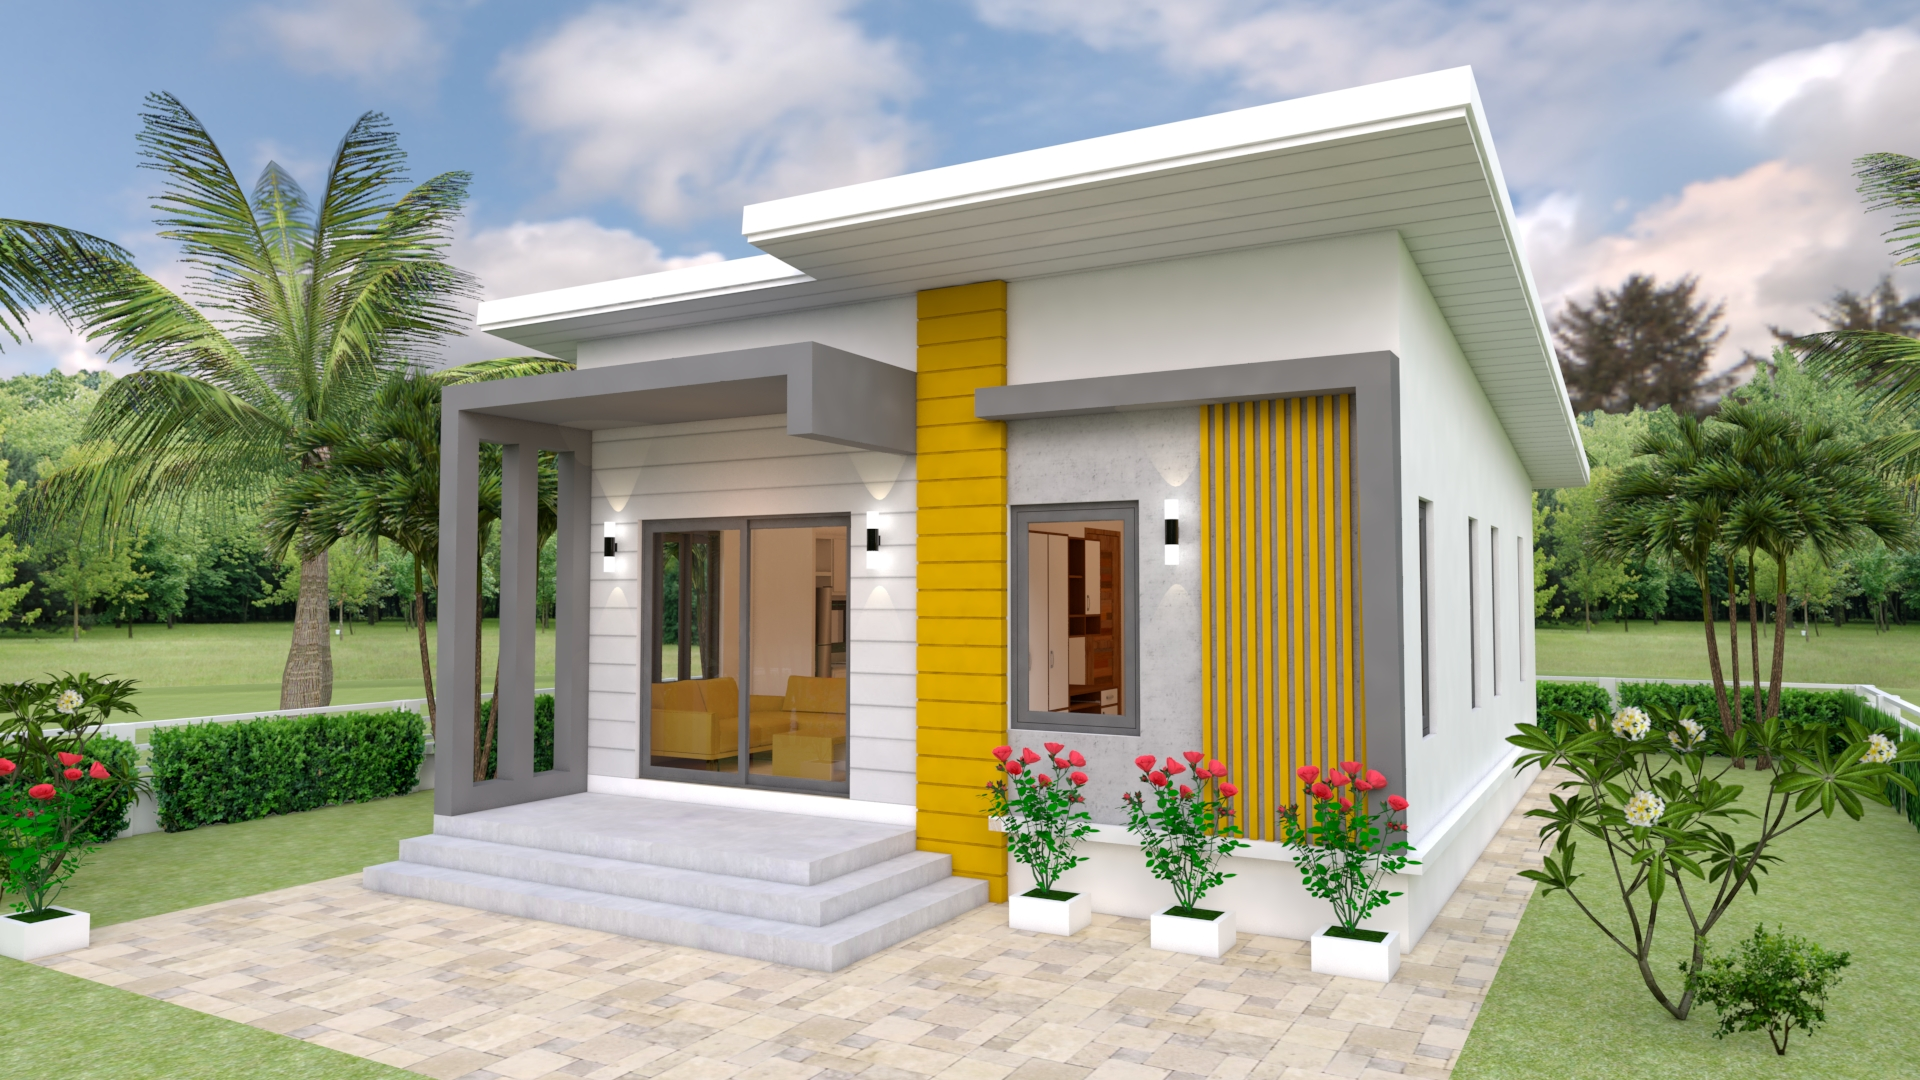 House Design Plans 7x12 With 2 Bedrooms Full Plans House Plans